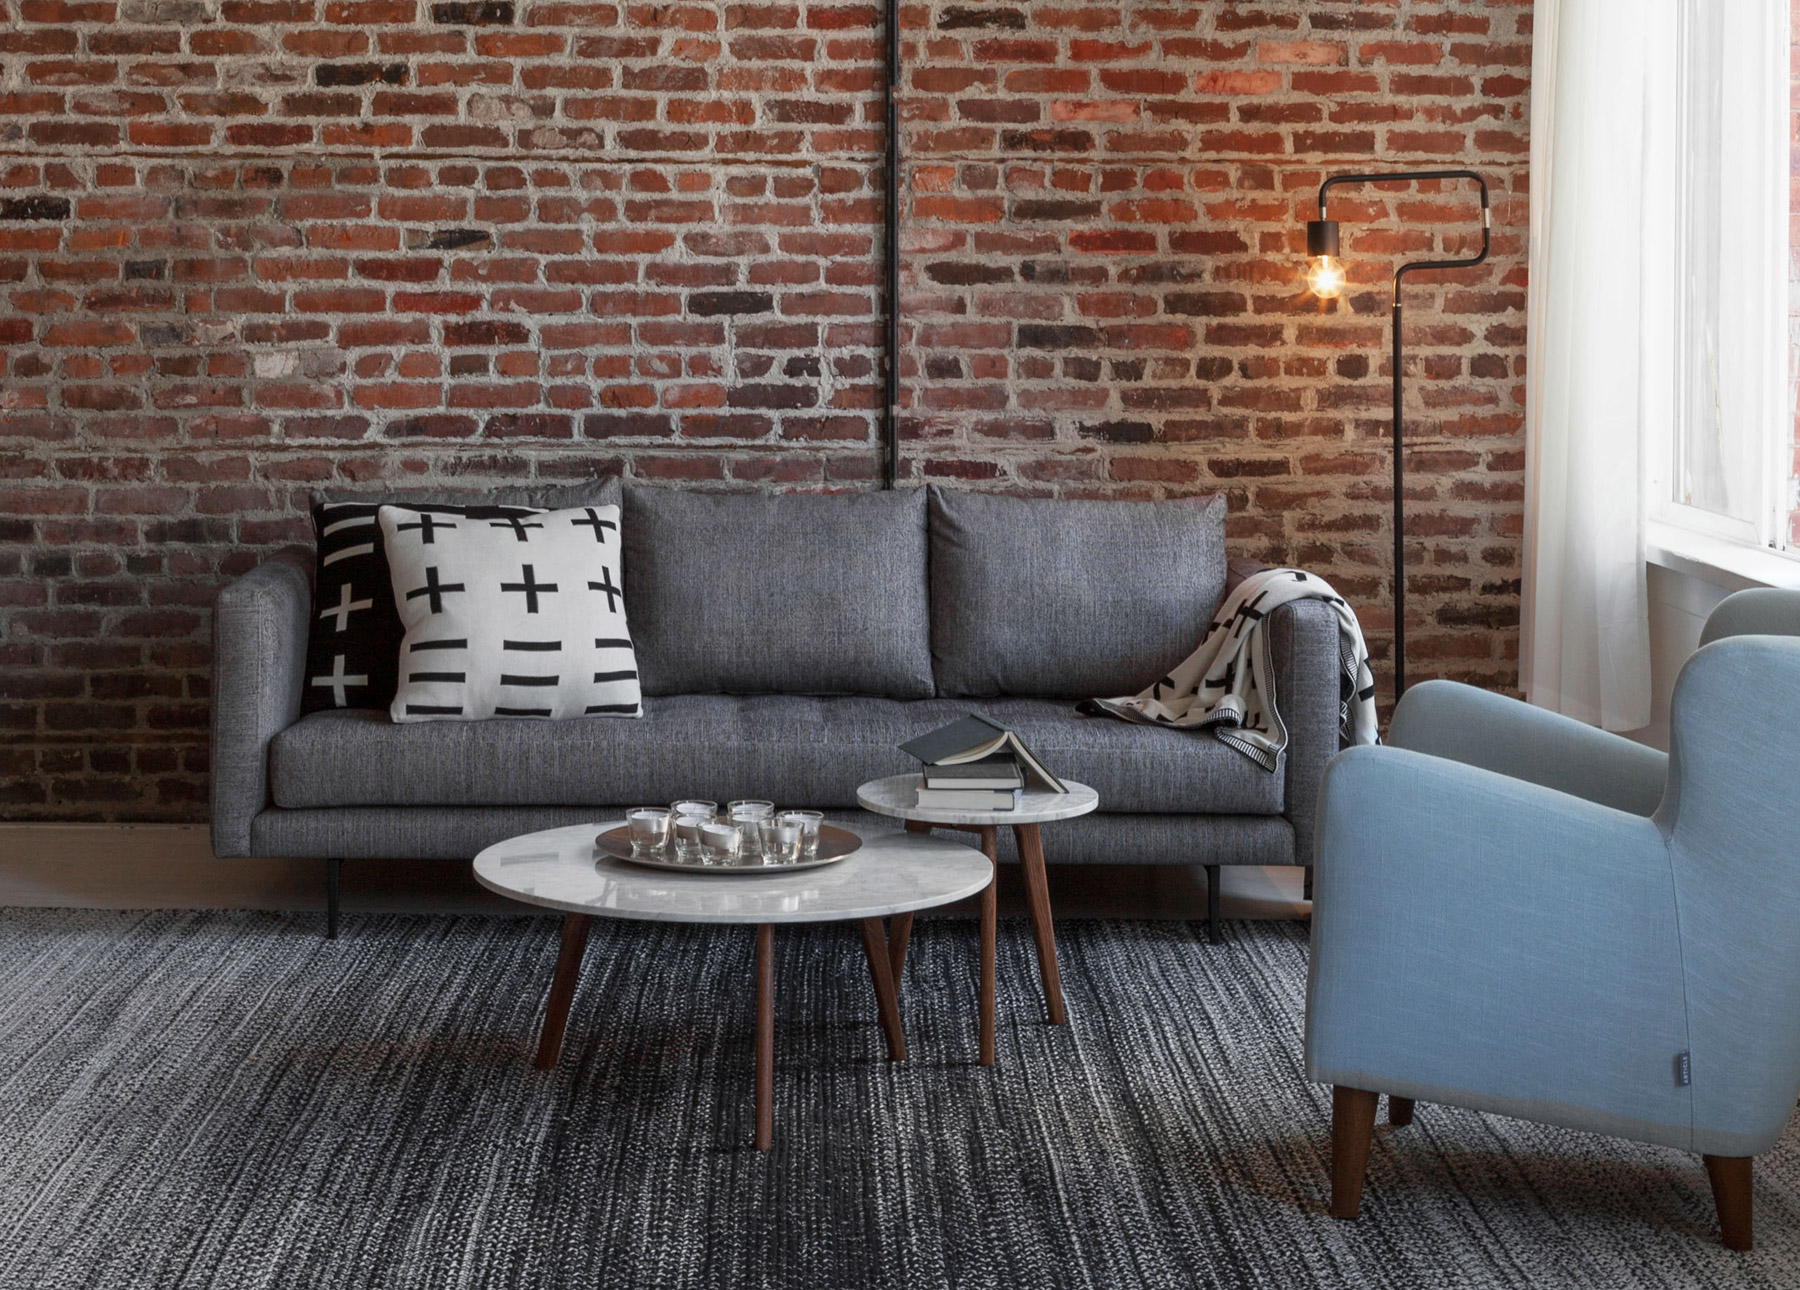 The Parker sofa is structured, but casual and looks right at home in a  chic, urban loft.